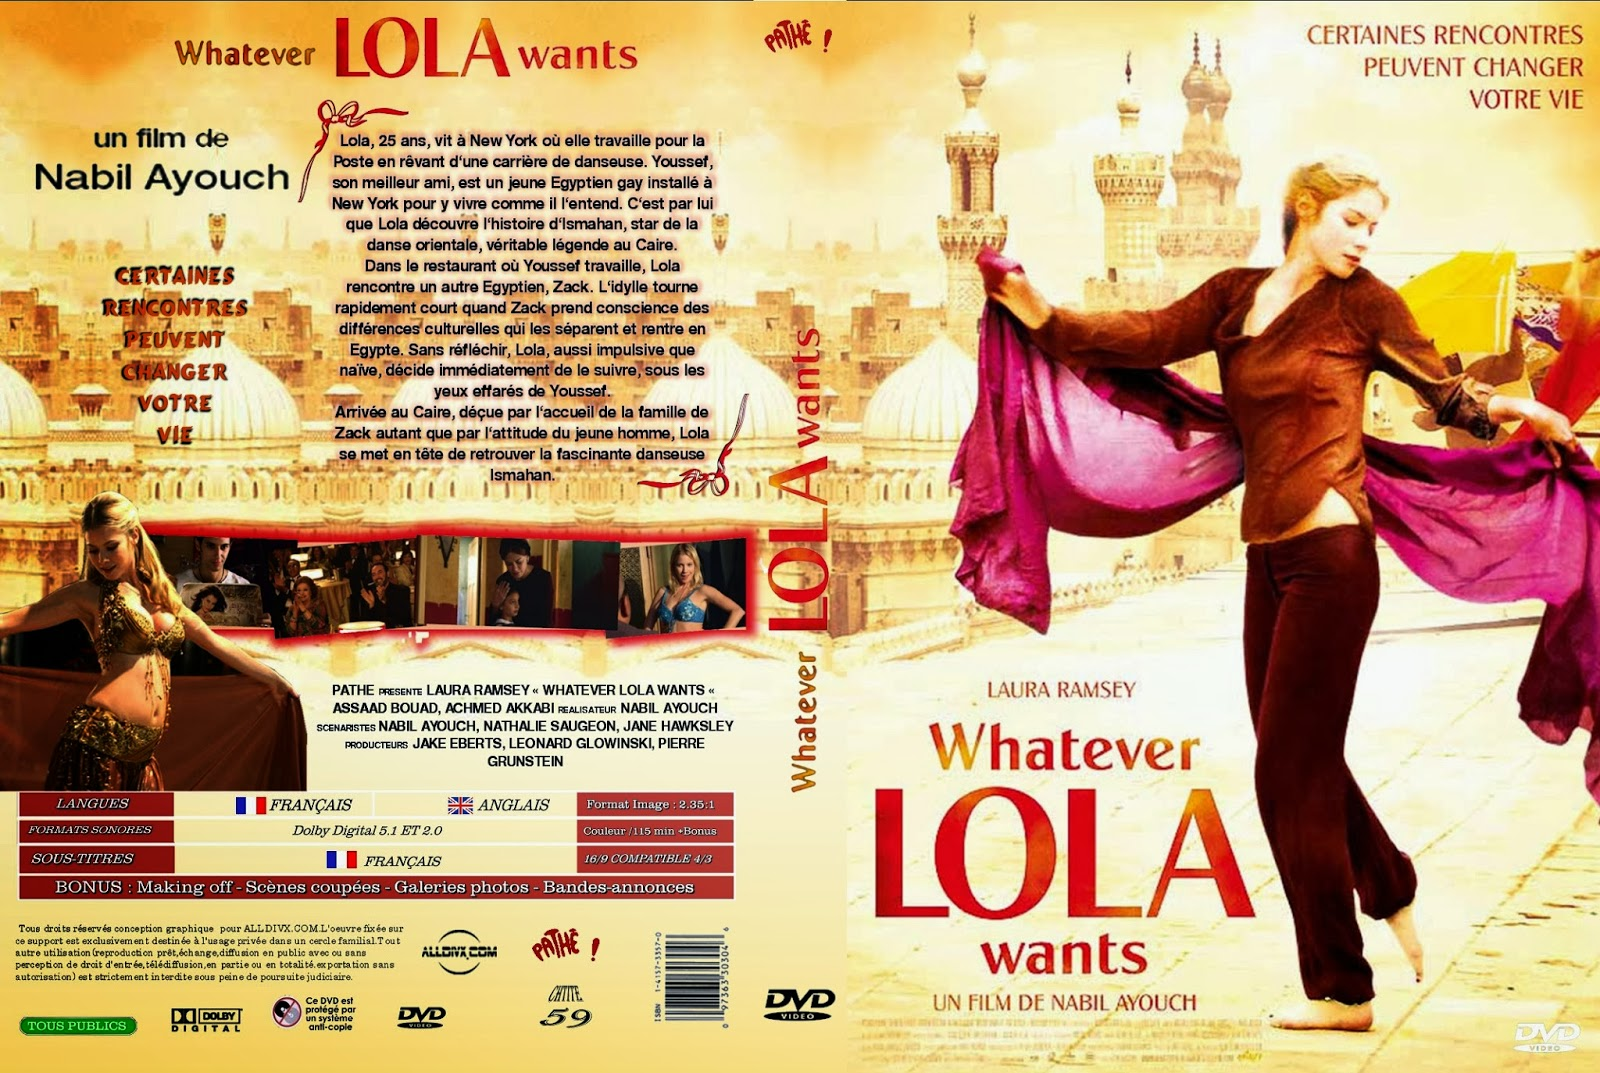 whatever-lola-wants-film-egipt